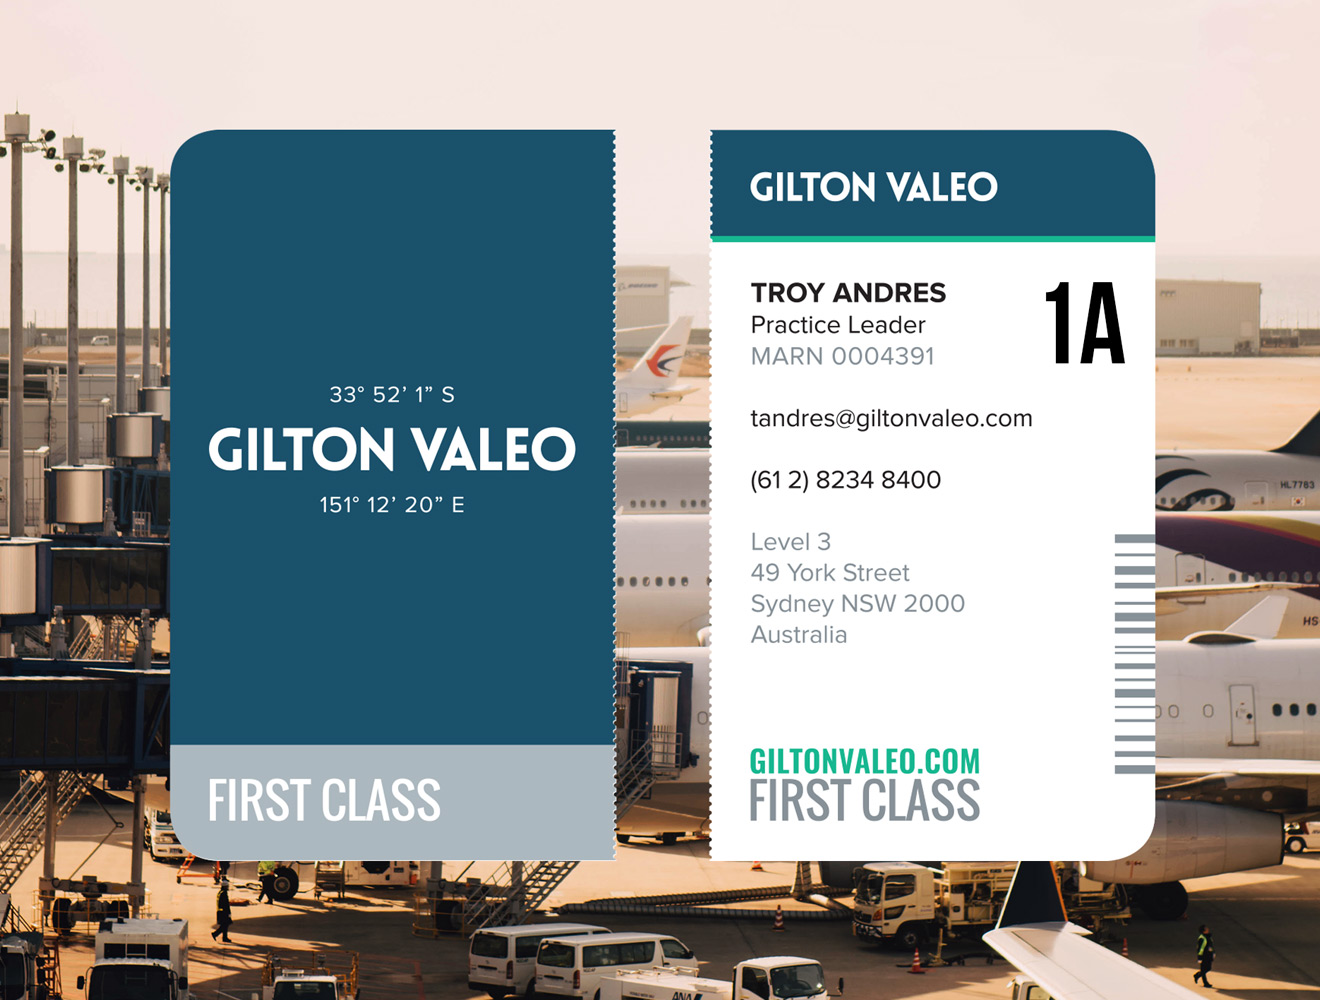 gilton-valeo-summary-thumbs.jpg